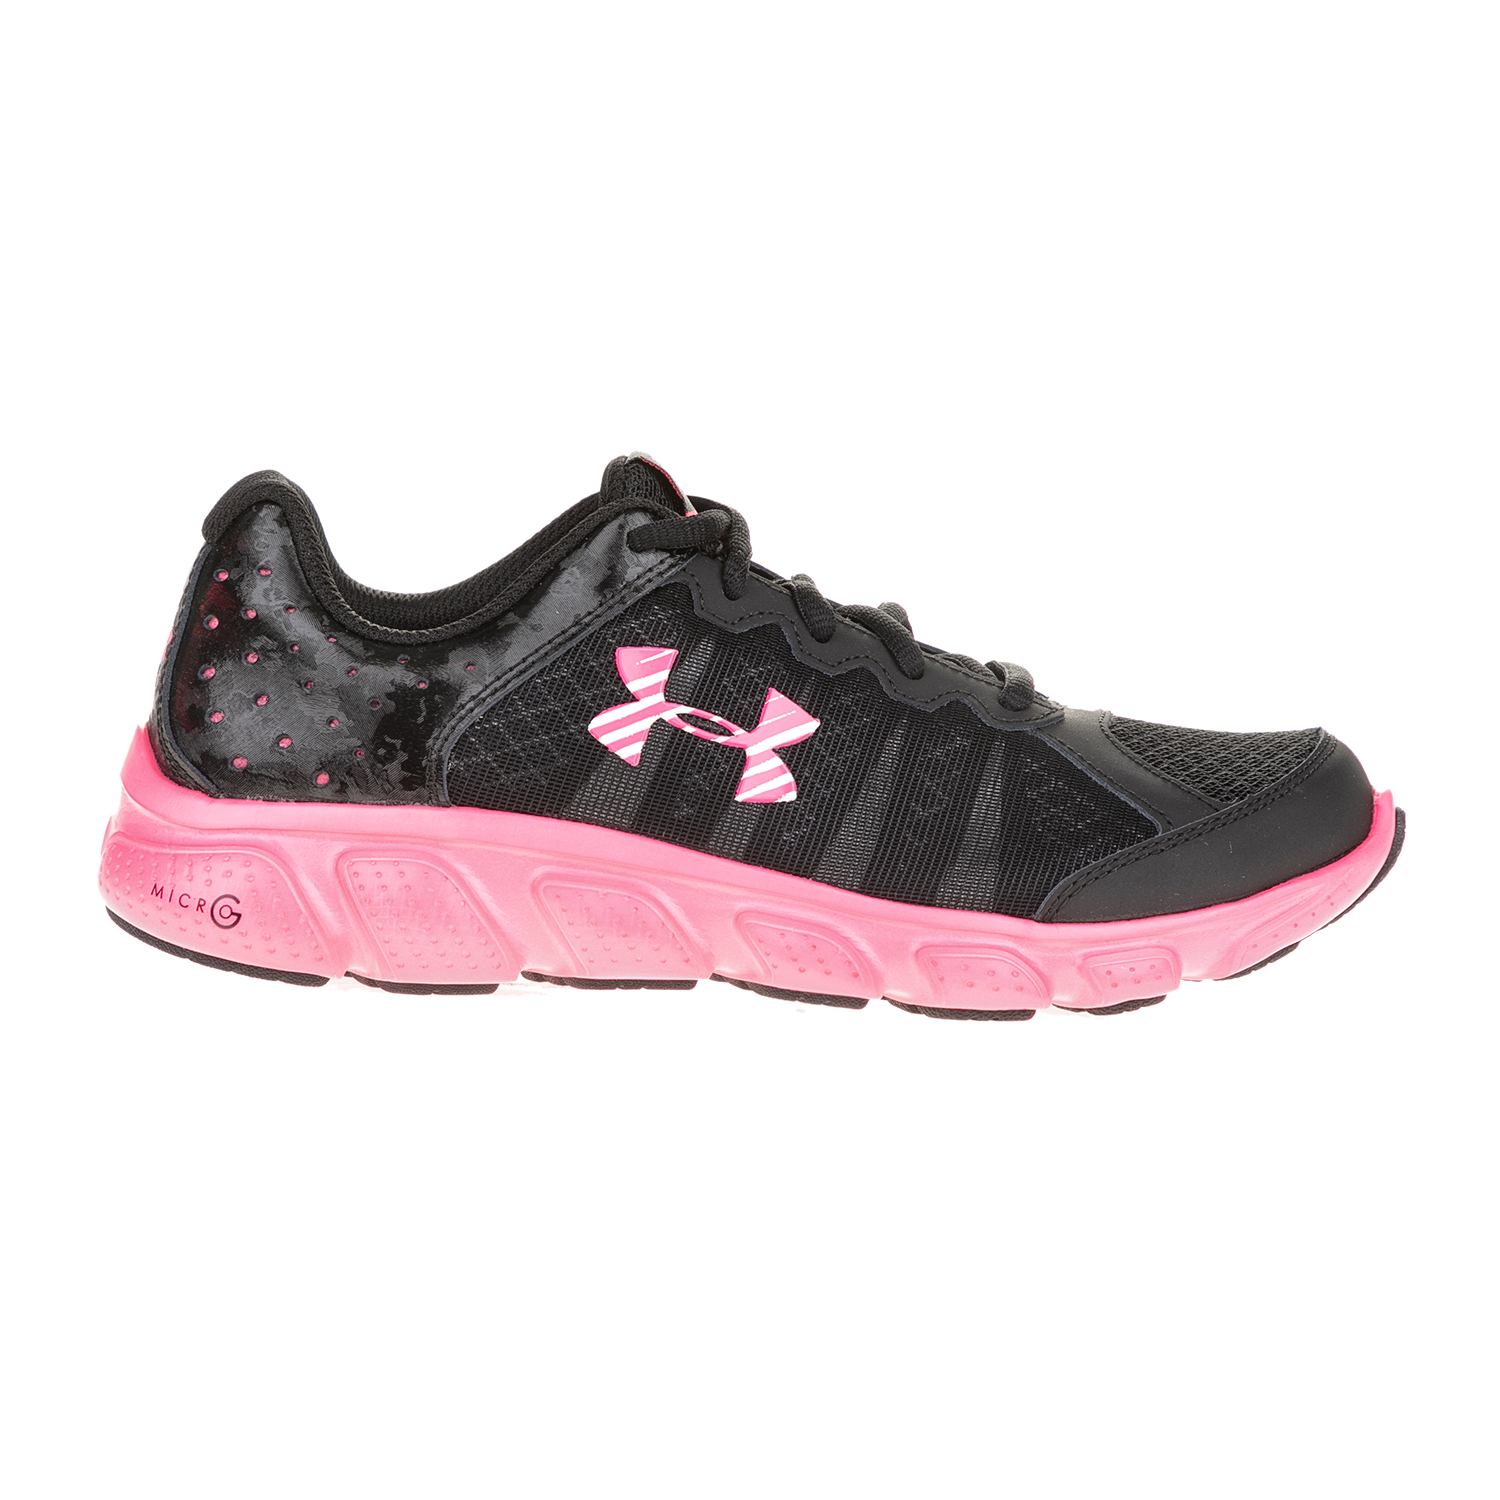 UNDER ARMOUR – Κοριτσίστικα αθλητικά παπούτσια UNDER ARMOUR GGS Micro G Assert 6 μαύρα